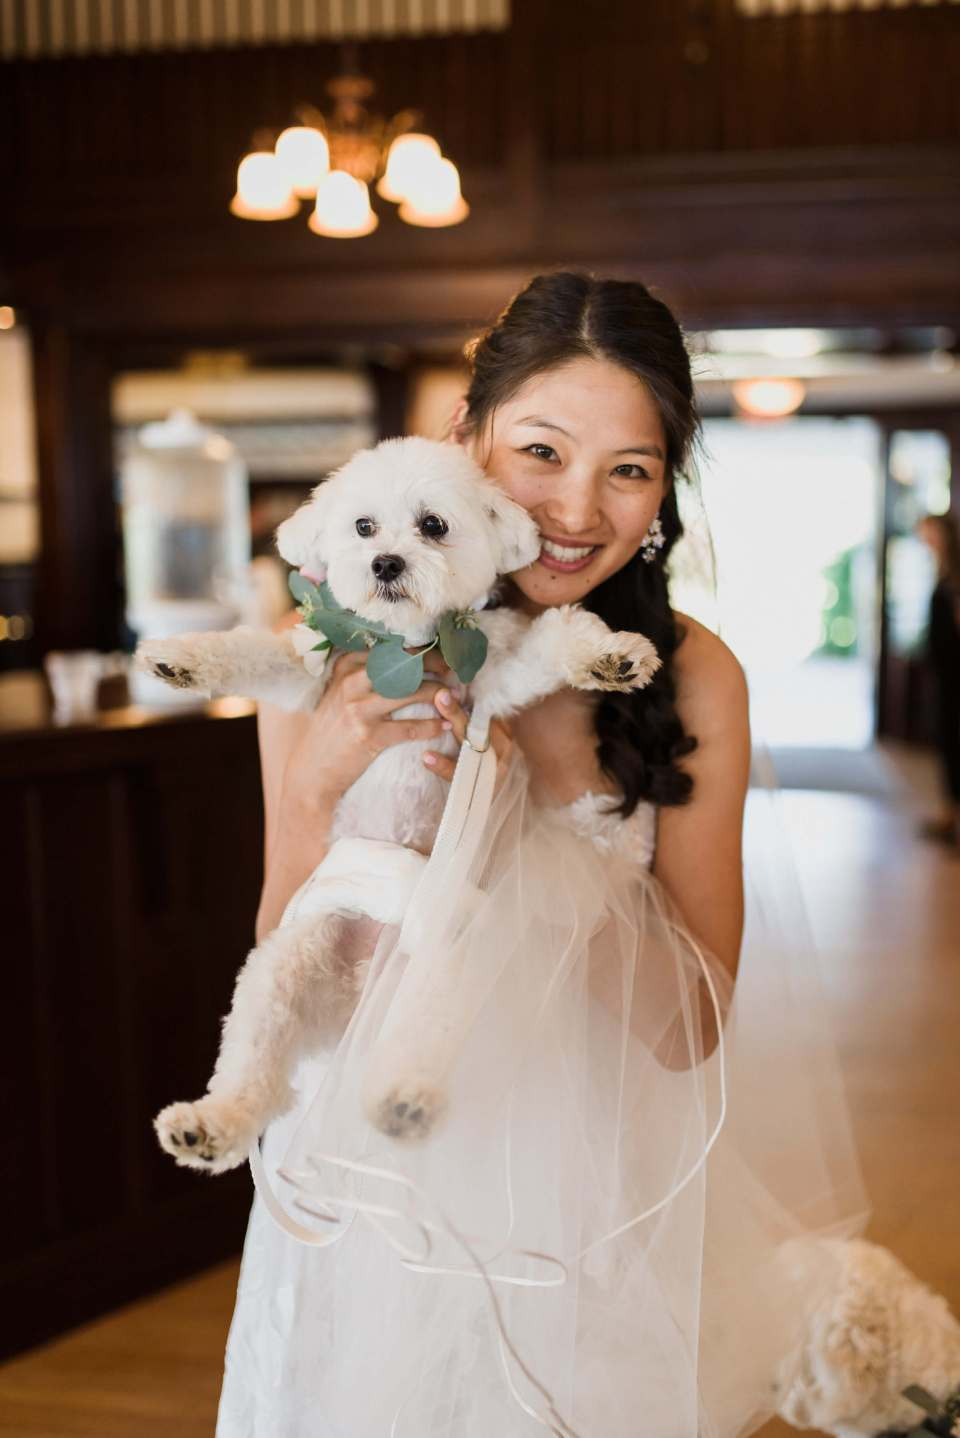 Bride Monica holds her dog on her wedding day.